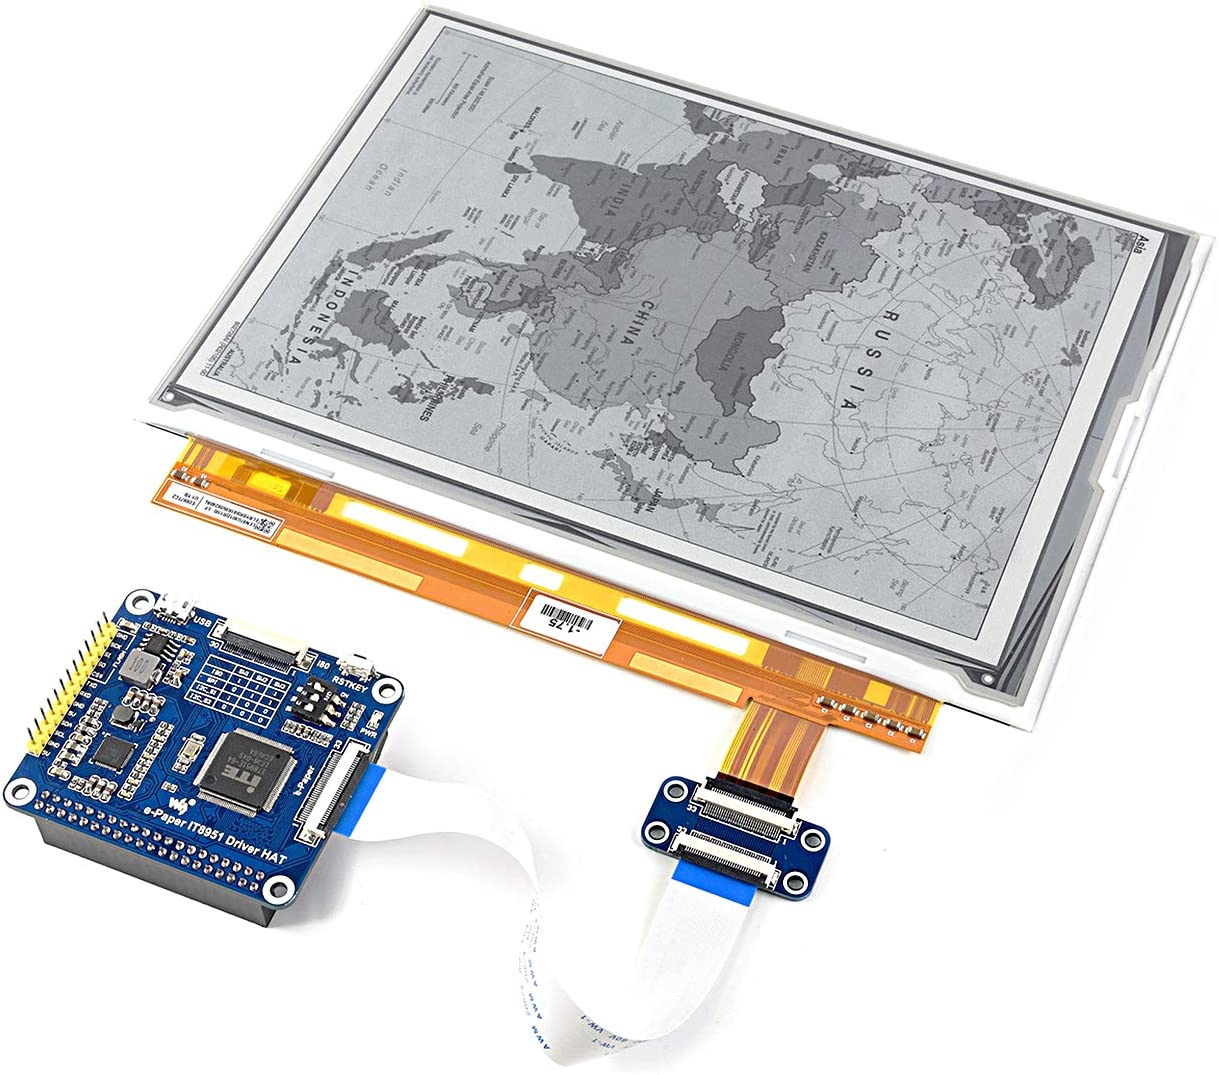 1200x825 Resolution with Embedded Controller IT8951 E-Paper Display Communicating via USB//SPI//I80//I2C Interface. Compatible with Raspberry Pi Zero//Zero W//Zero WH//2B//3B//3B+ 9.7 inch E-Ink Display